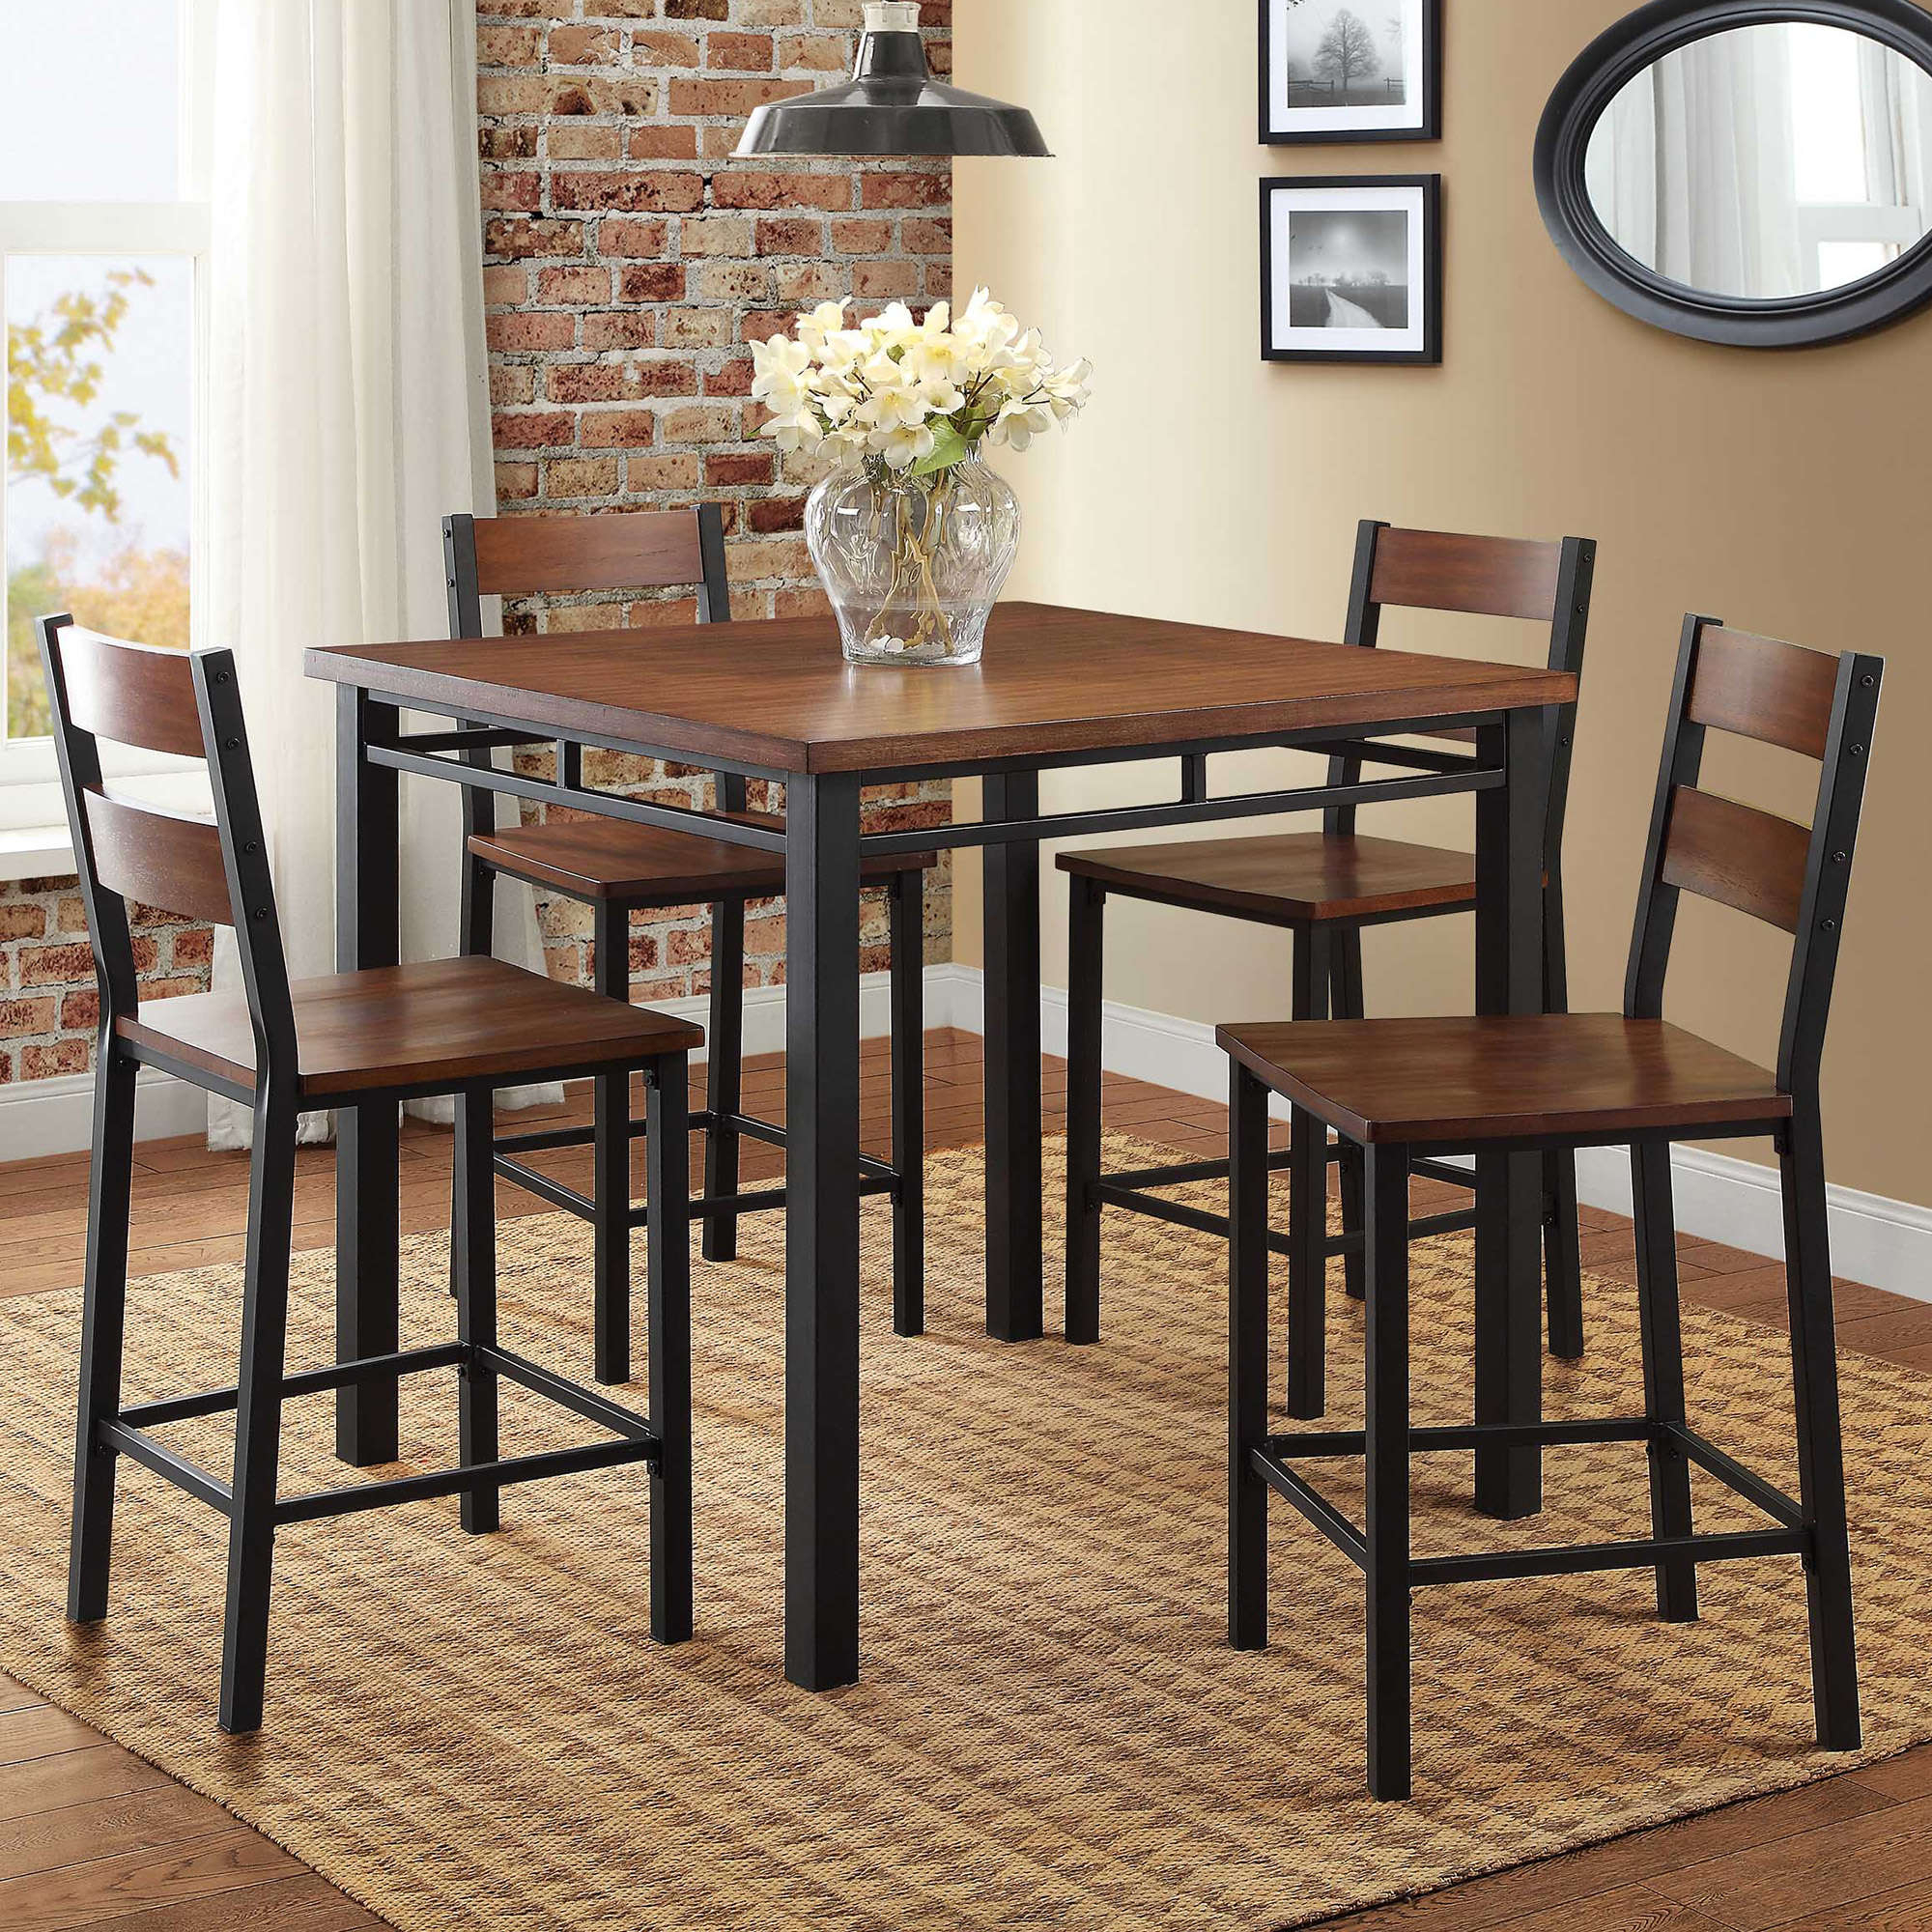 5 Piece Breakfast Nook Dining Sets Throughout Best And Newest Rustic Dining Table Set High Top Counter Height Chair Kitchen Nook  (View 2 of 25)